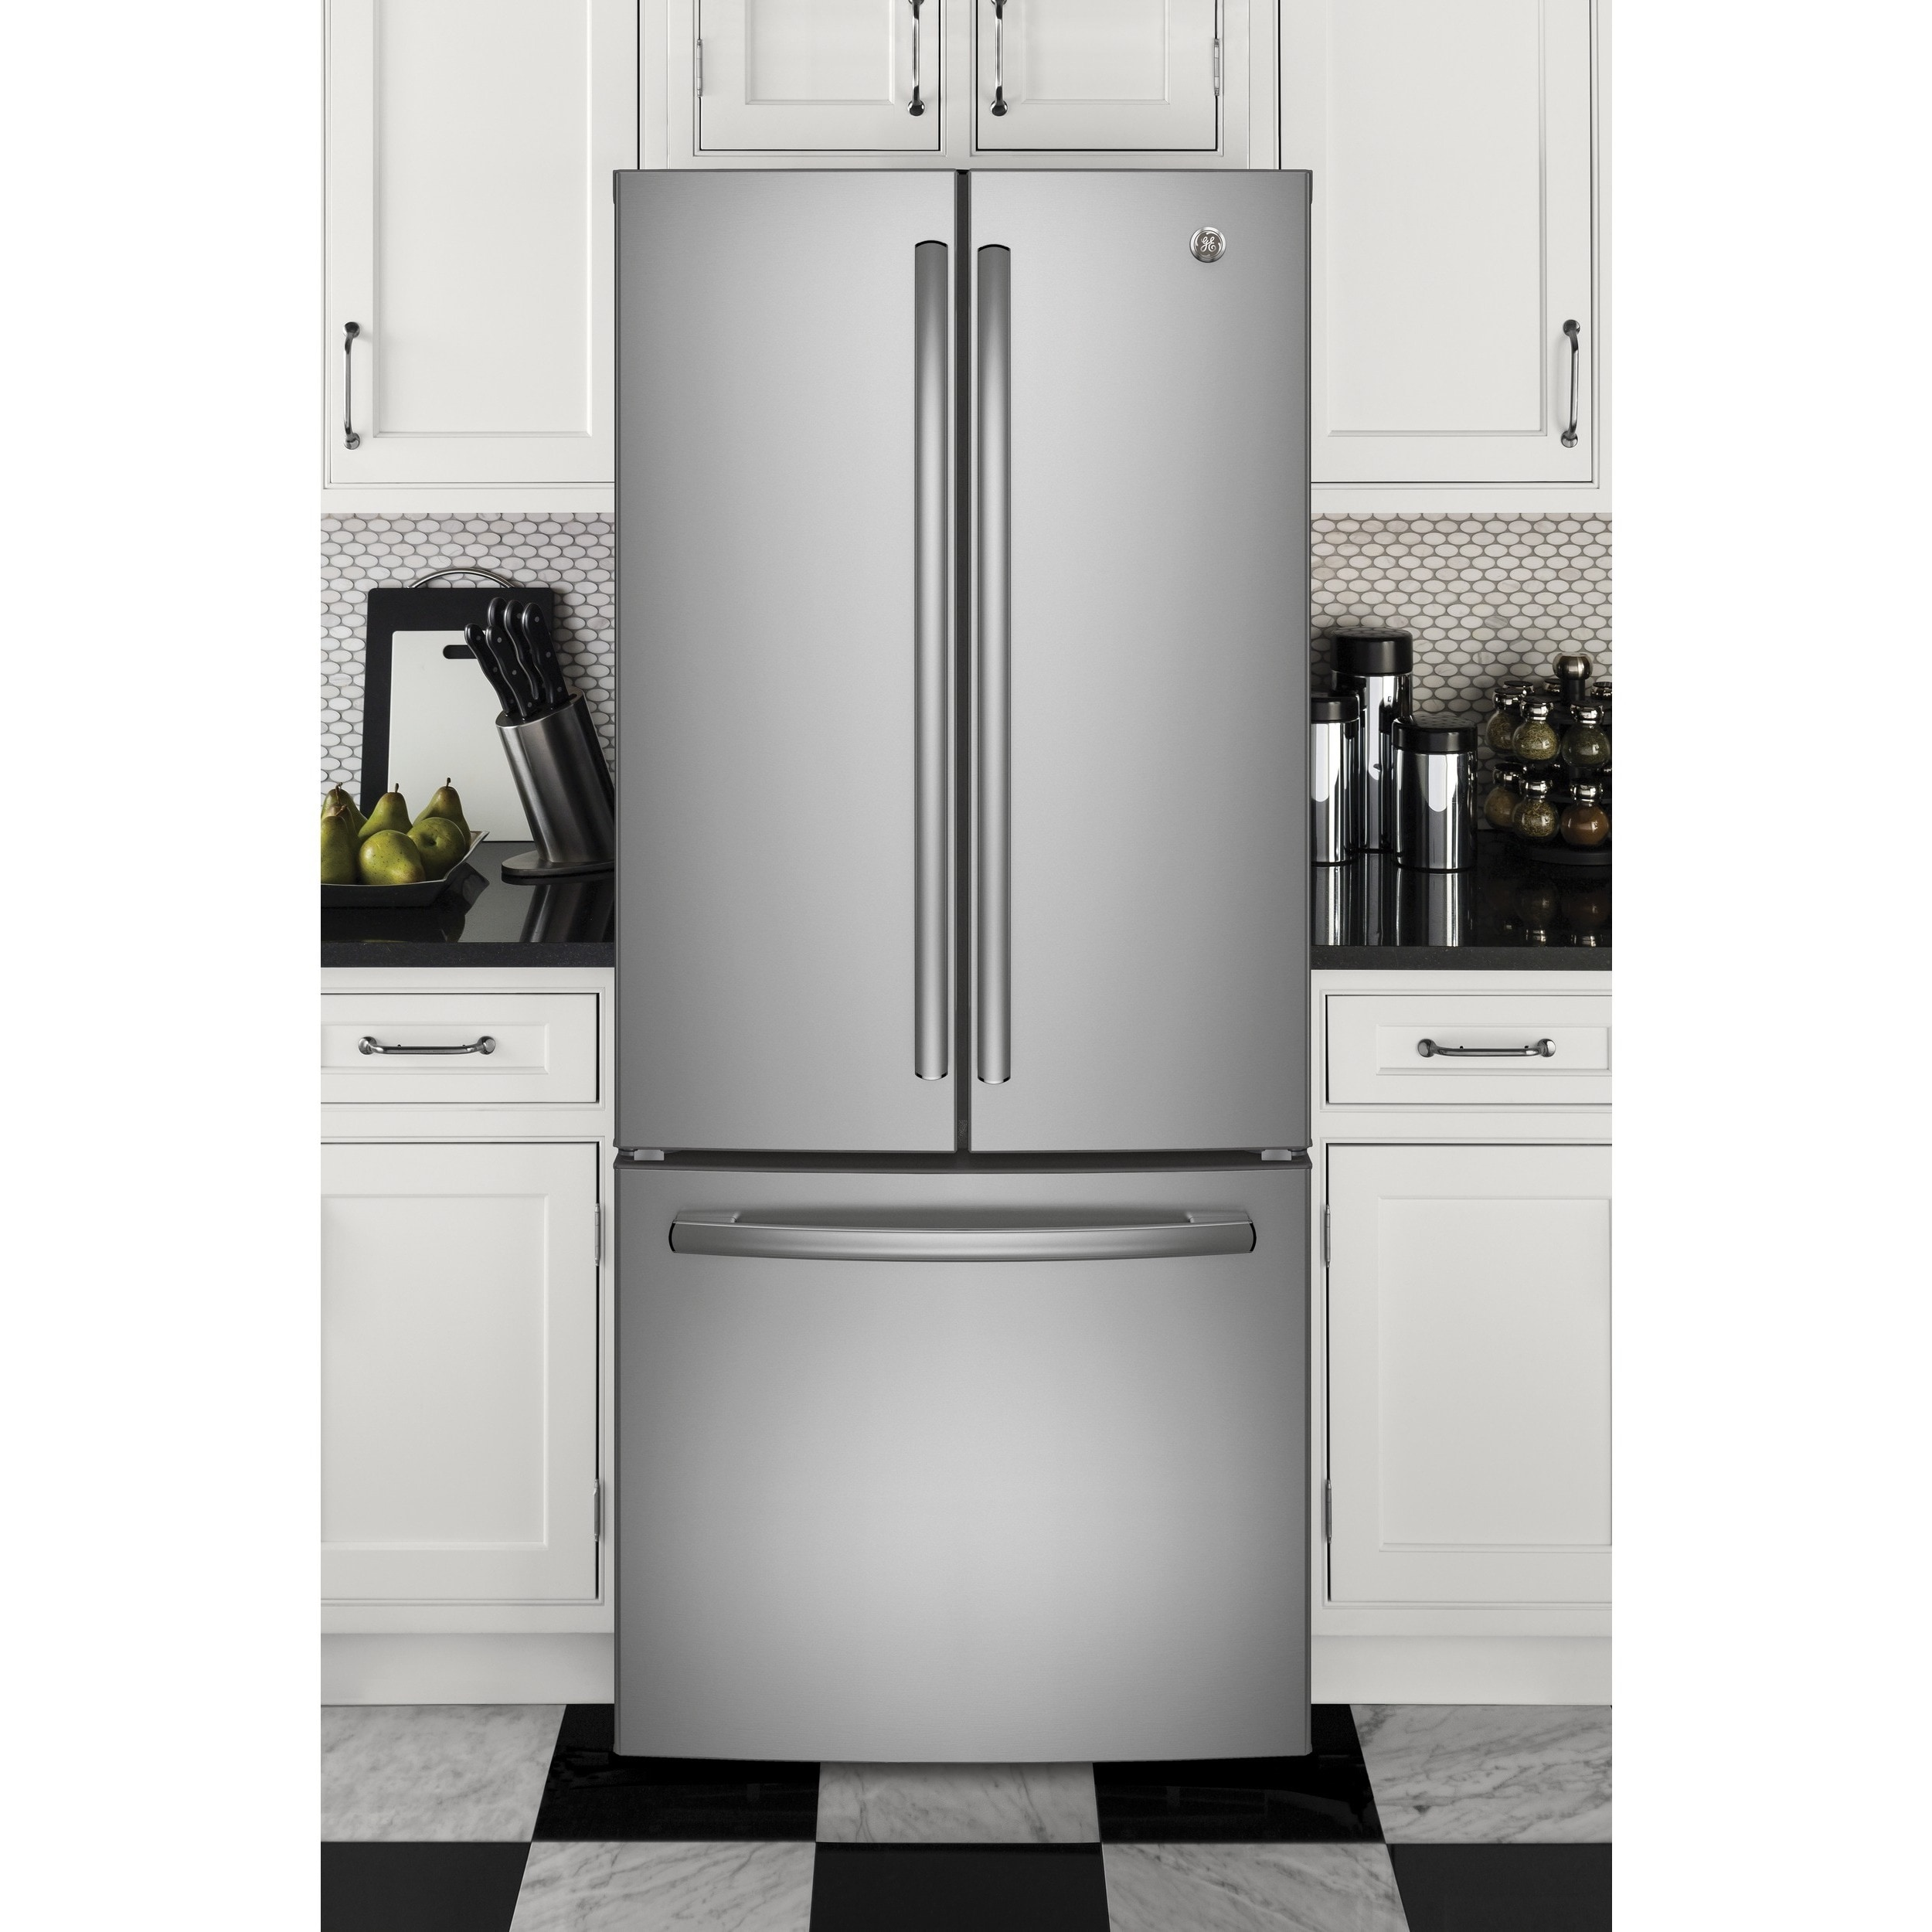 GE Series Energy Star 20.8 Cubic foot French Door Refrige...